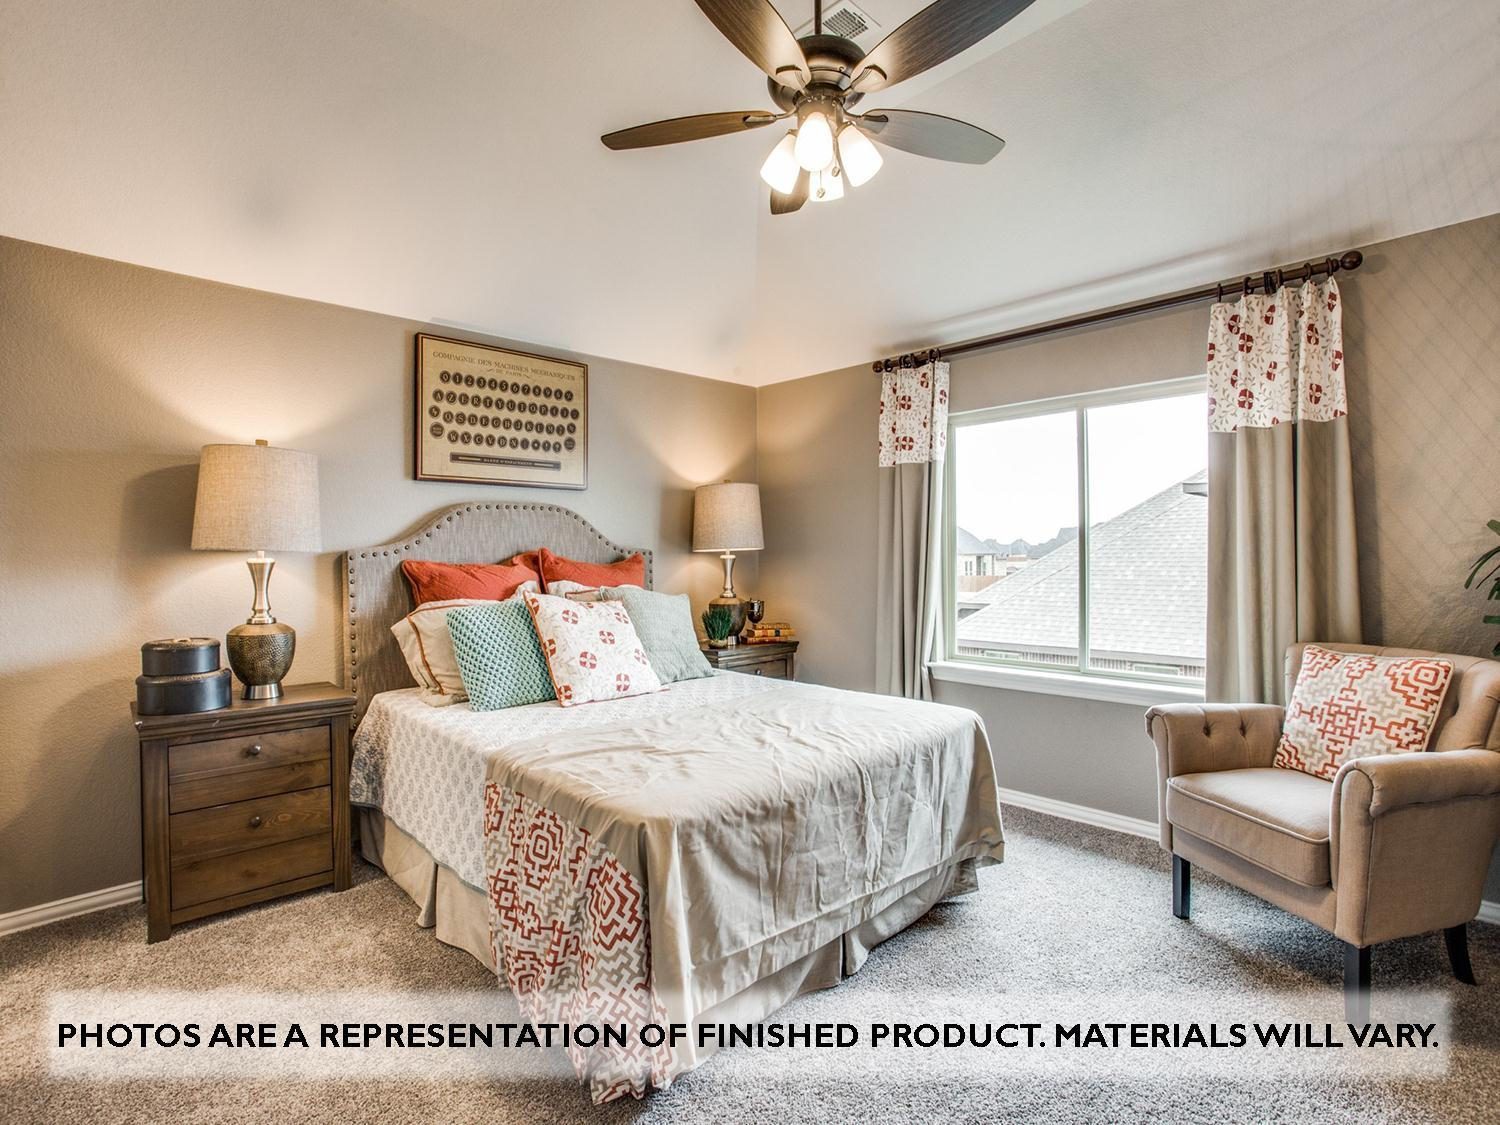 Bedroom featured in the Primrose II By Bloomfield Homes in Dallas, TX